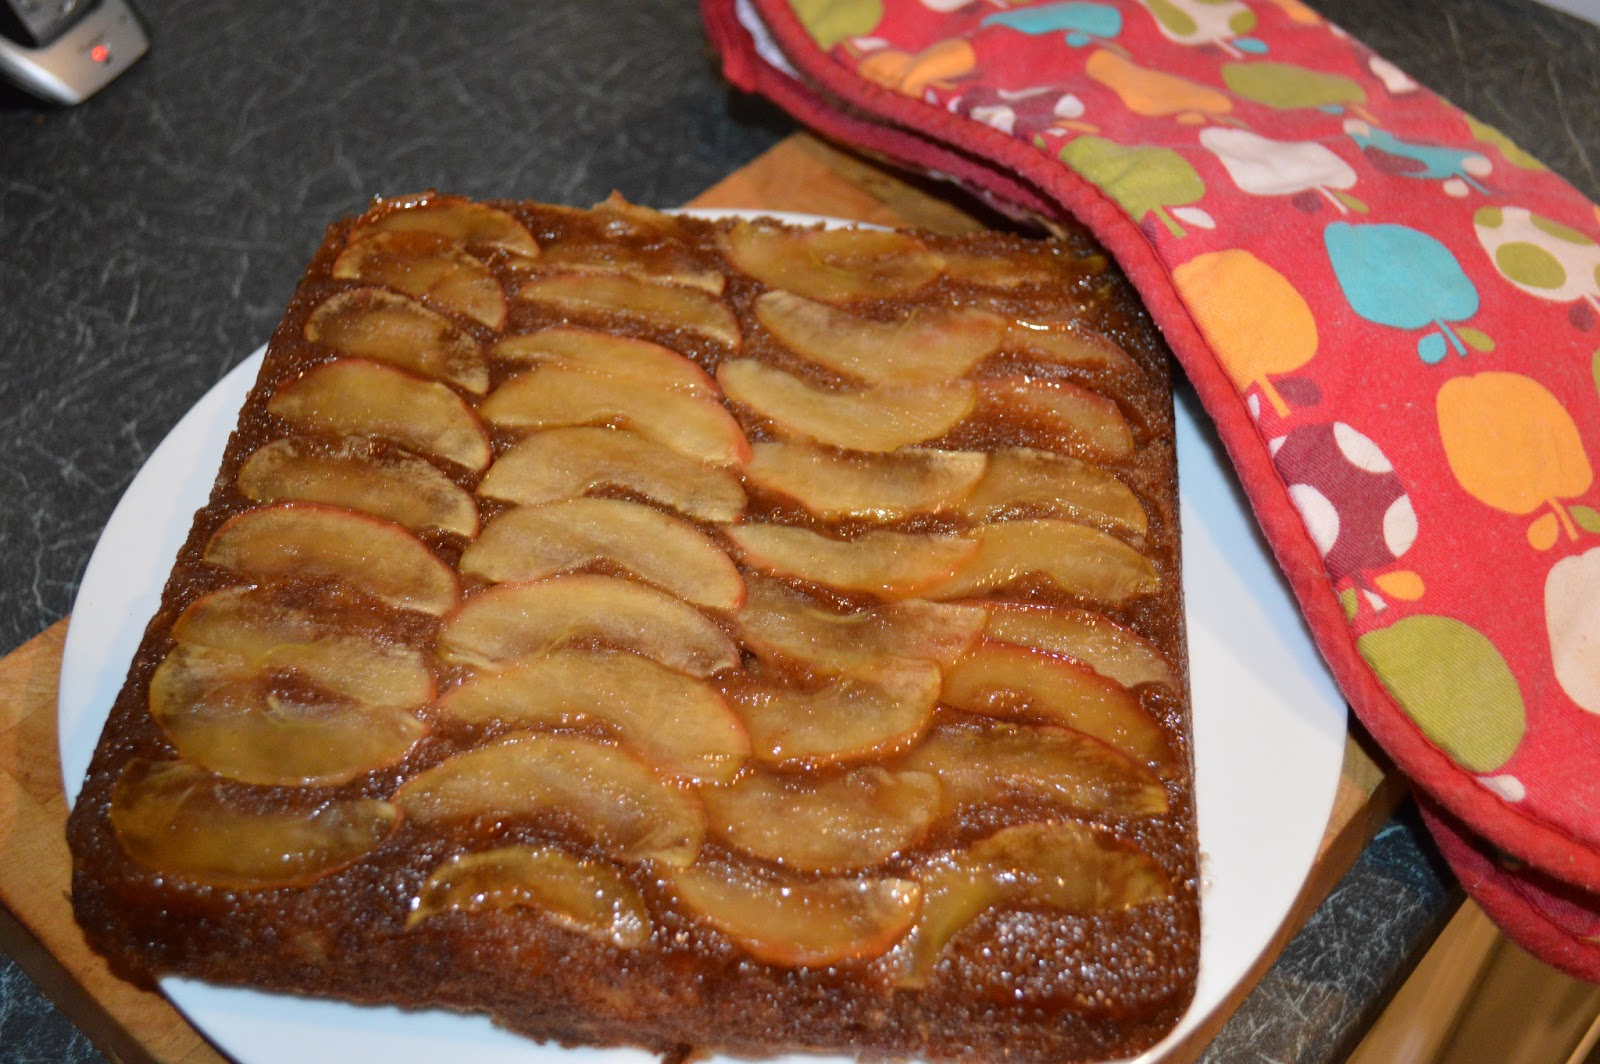 My Little English Kitchen: Upside-Down Toffee Apple Brownies